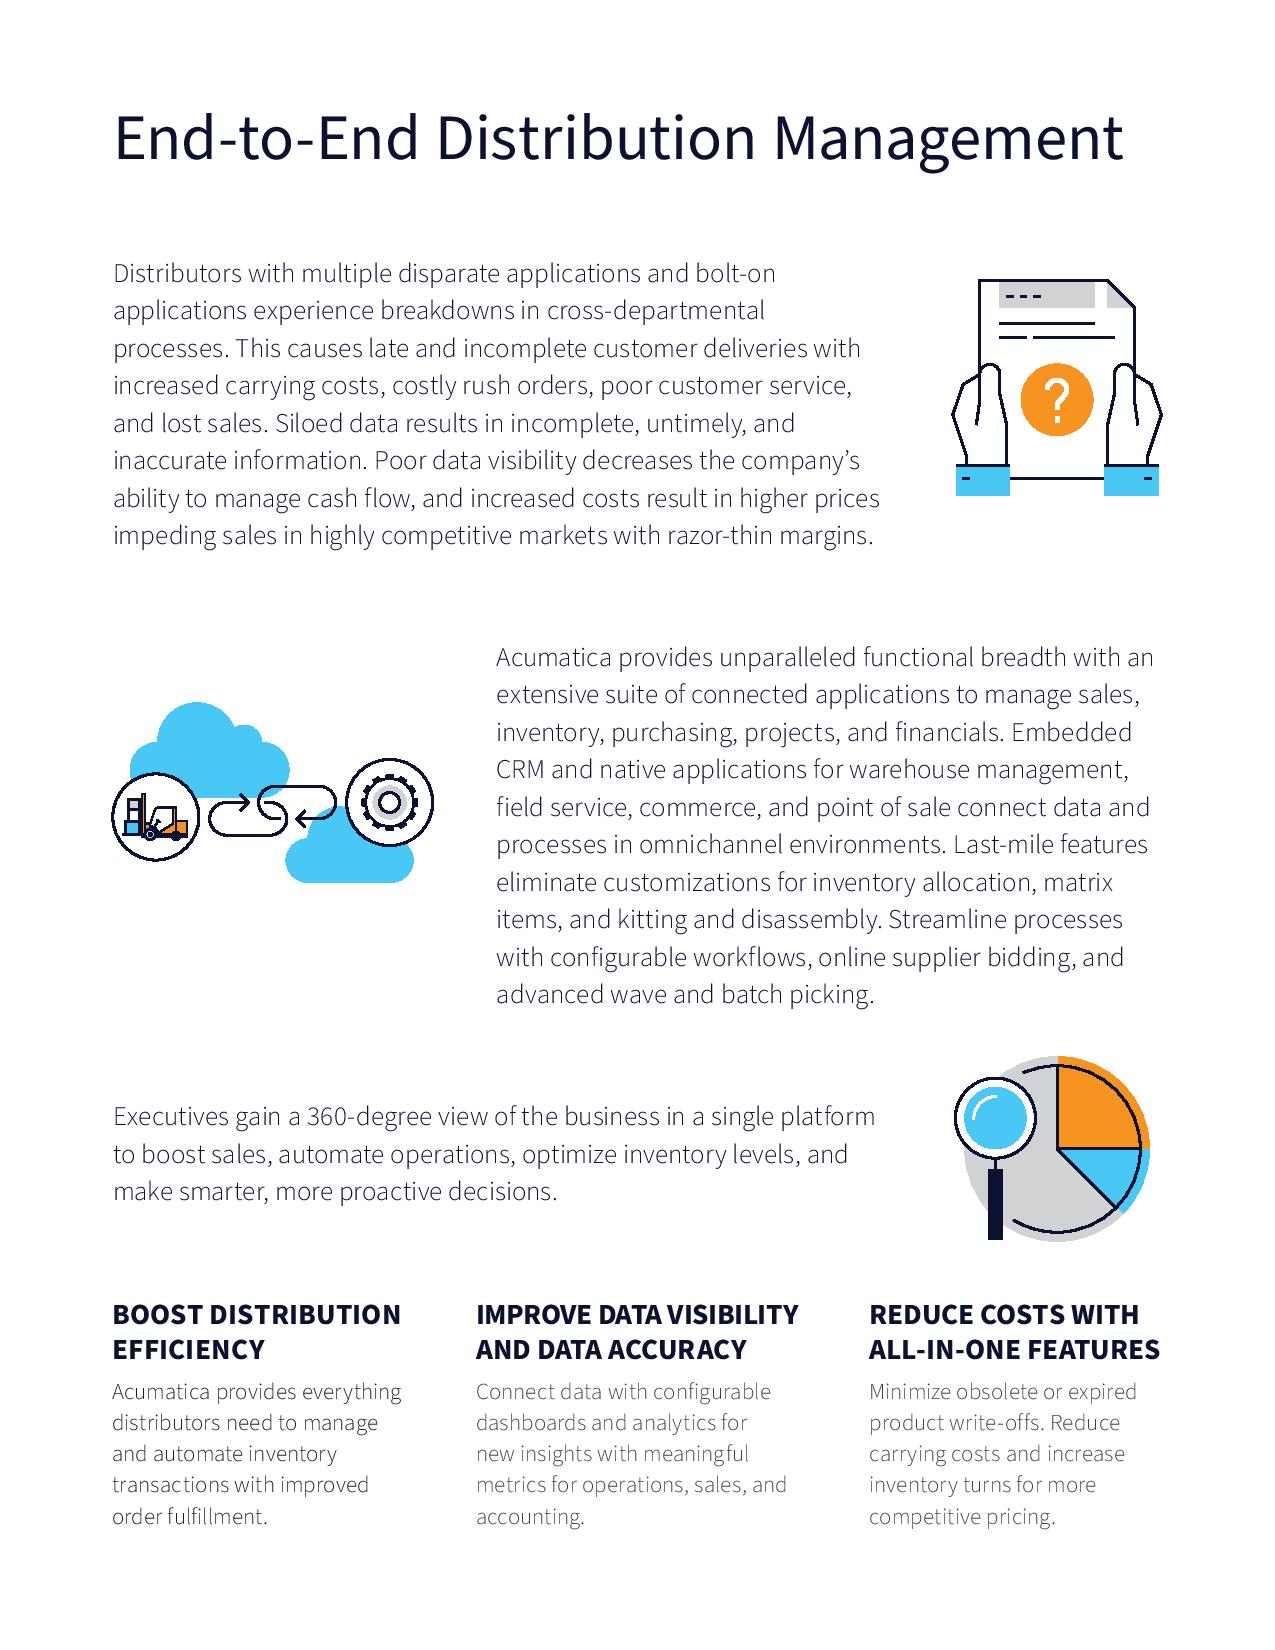 Best ERP for Distributors: Why Successful Companies Choose Acumatica, page 1